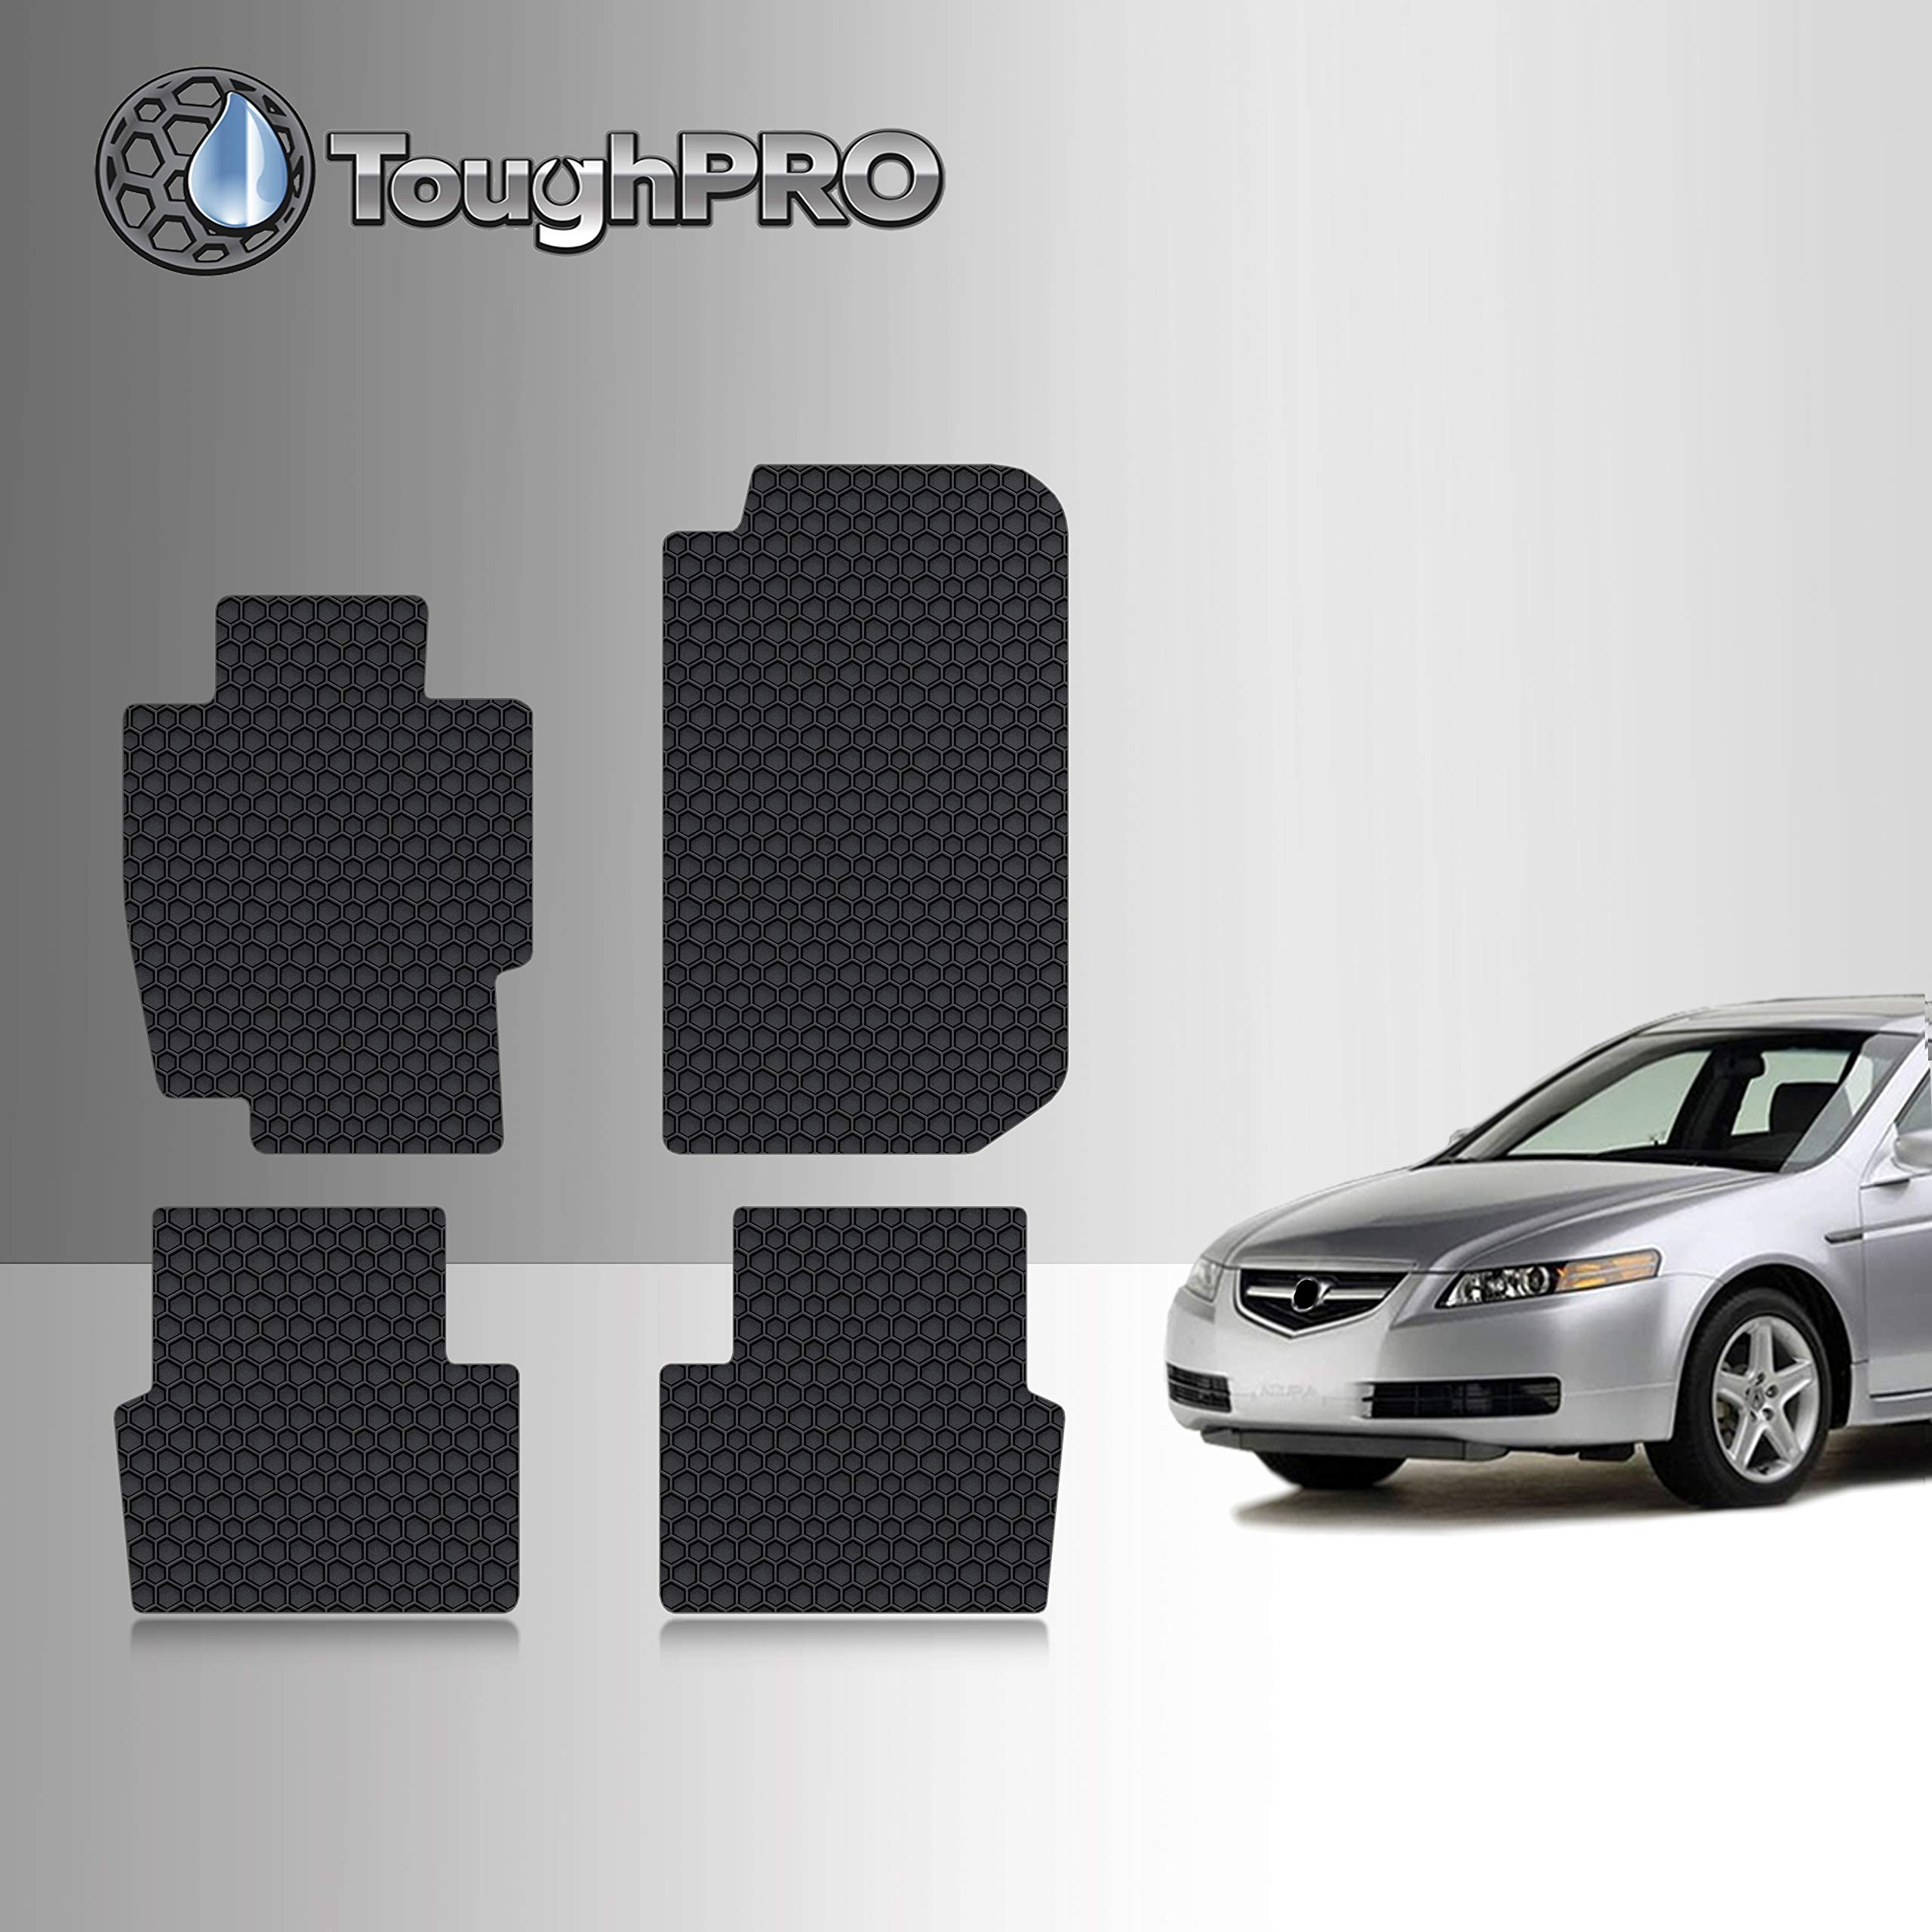 Toughpro Floor Mat Accessories Set Compatible With Acura Tl All Weather Heavy Duty Made In Usa Black Rubber 2004 2005 2006 2007 2008 Front Row 2nd Row